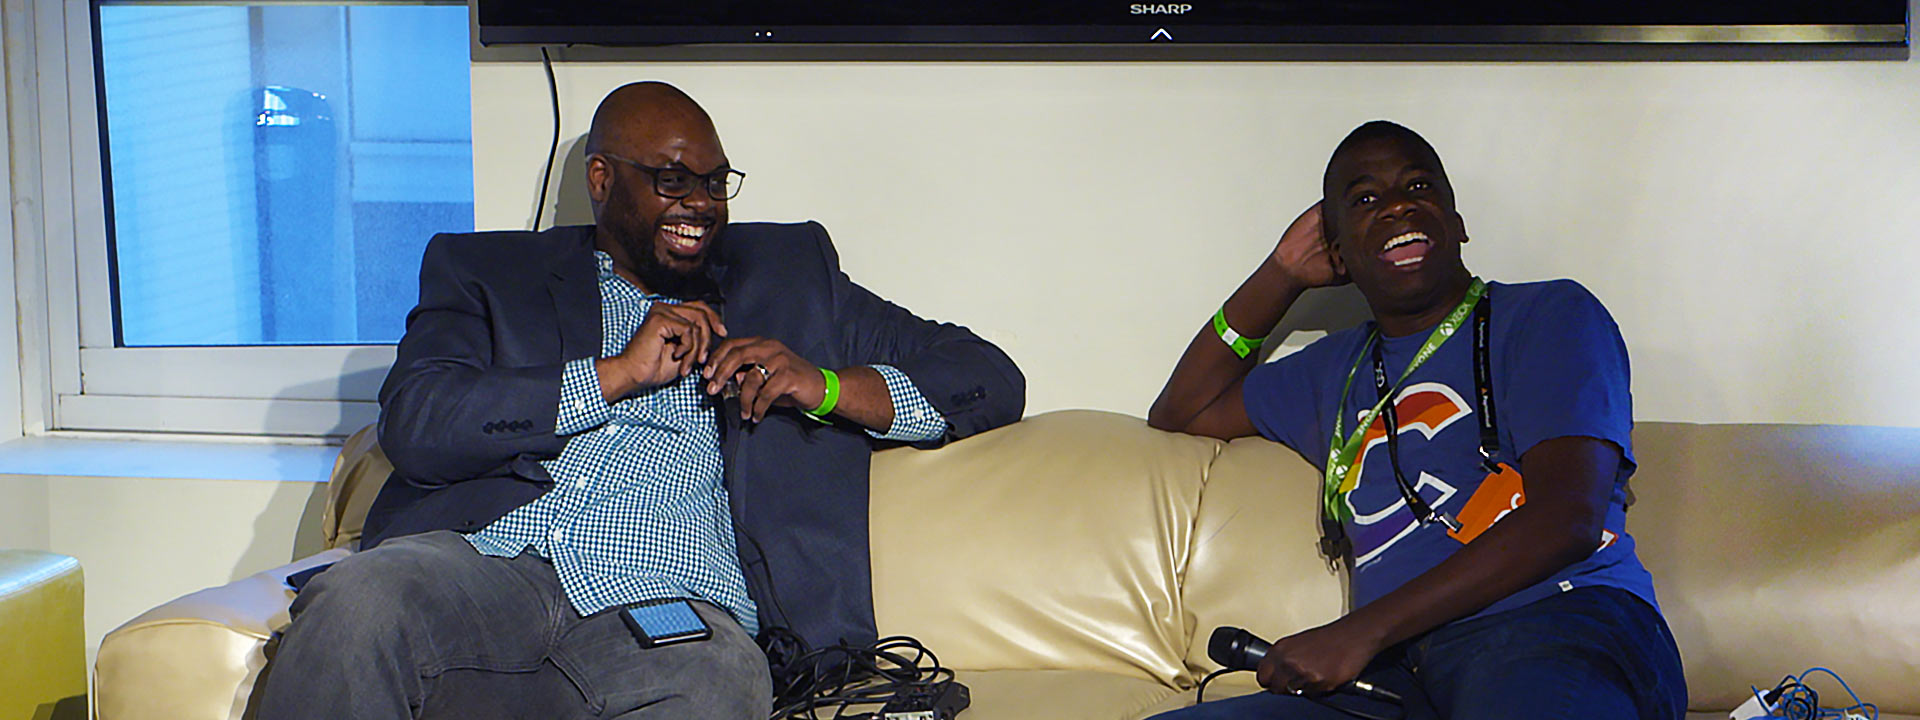 A gaming industry professionall from the black community is interviewed on a couch